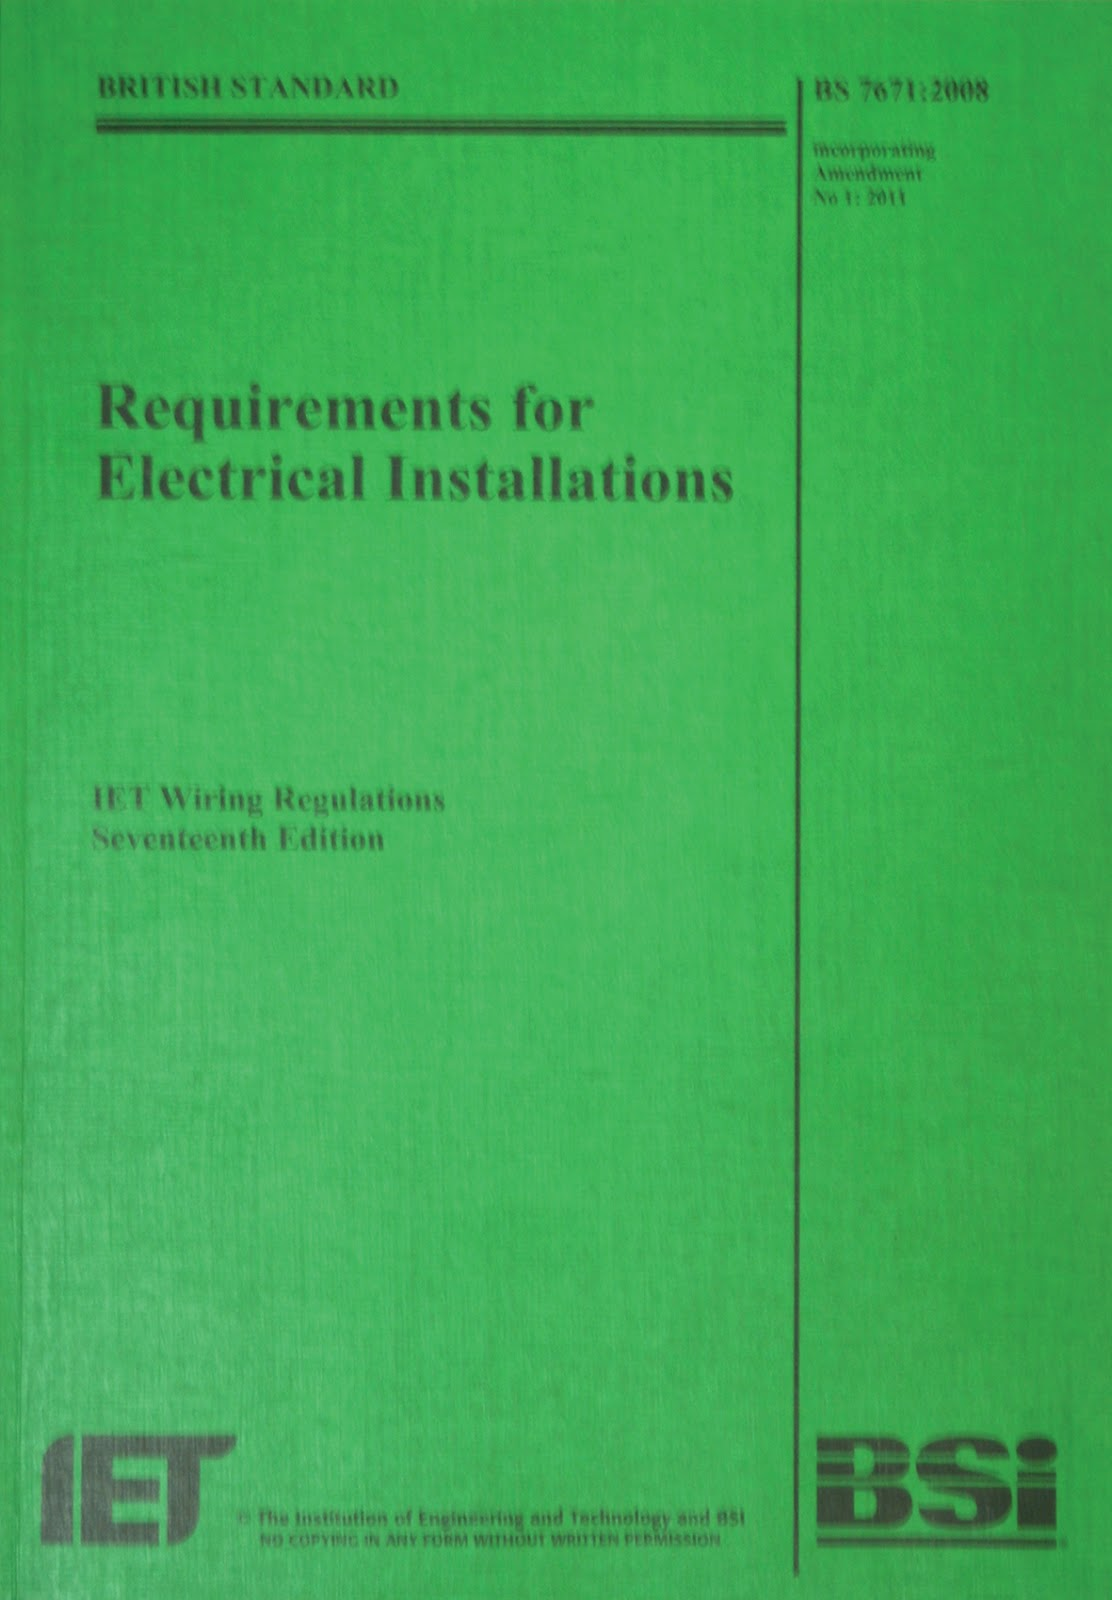 The Second Amendment Is On Its Way For 17th Edition Wiring Iet Regulations Book